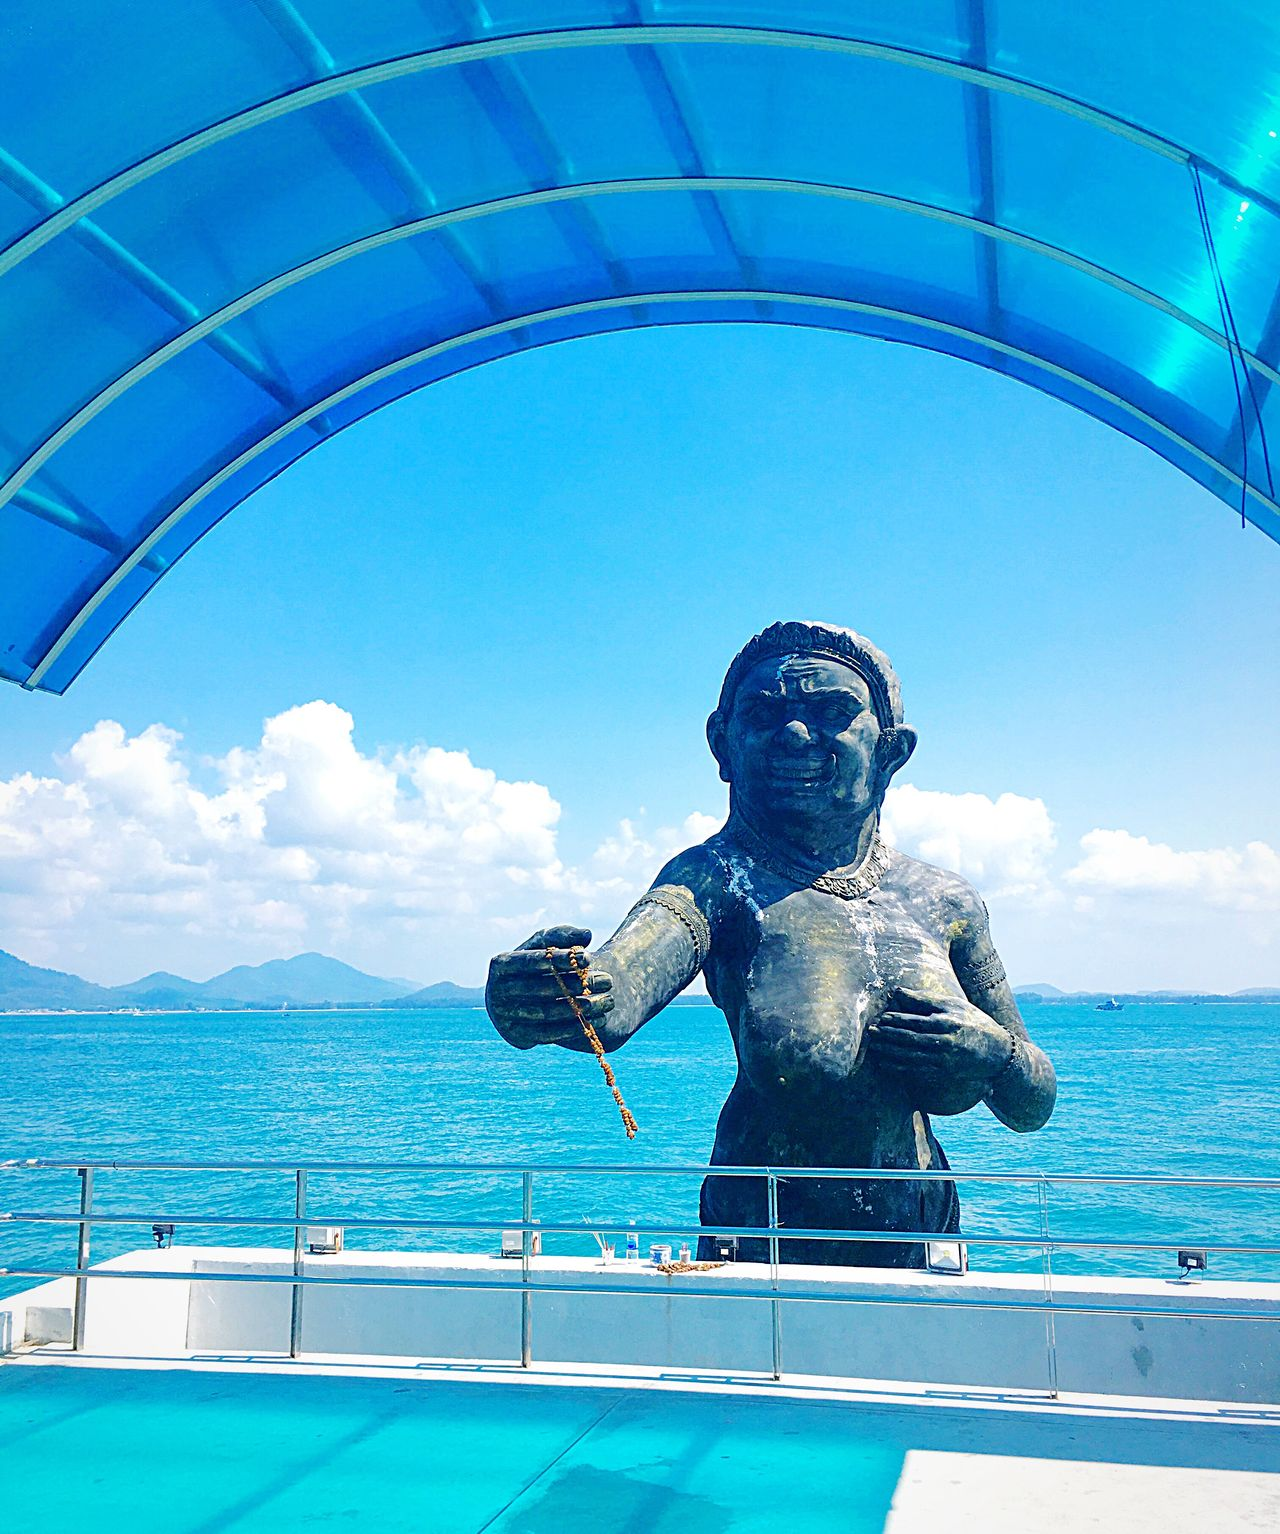 Statue Sea And Sky Stone Material Sculpture Stonemonument Blue Sky Blue Sea Sculpted Monument Simbol Pray Offering Dedication Wreath Garland Transportation Built Structure Resort Vacations Port Travel Thailand